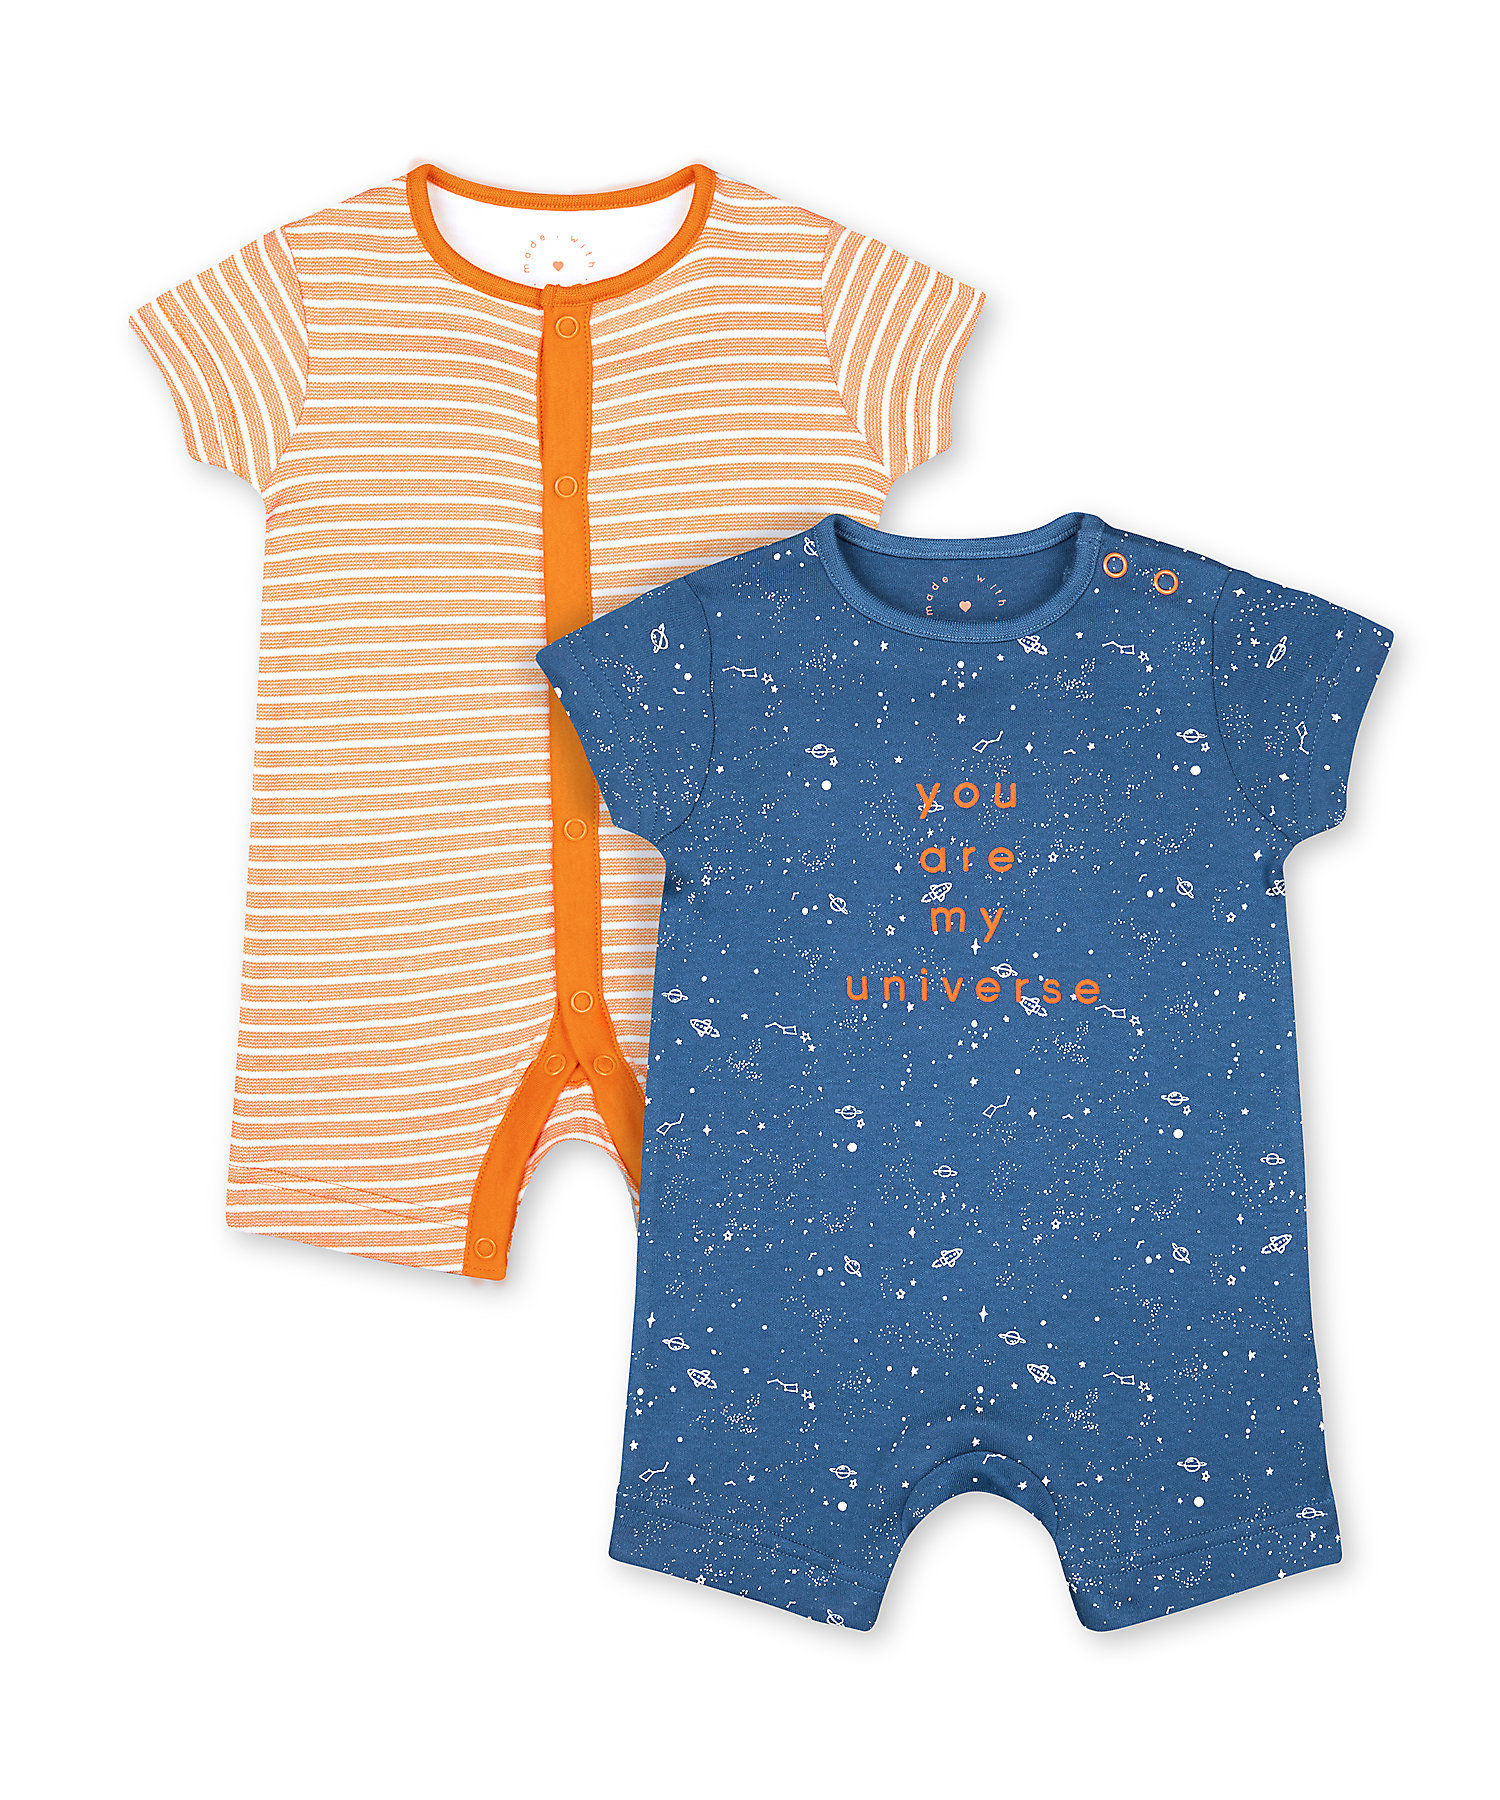 Mothercare | Boys Half Sleeves Romper Striped And Space Print - Pack Of 2 - Navy Orange